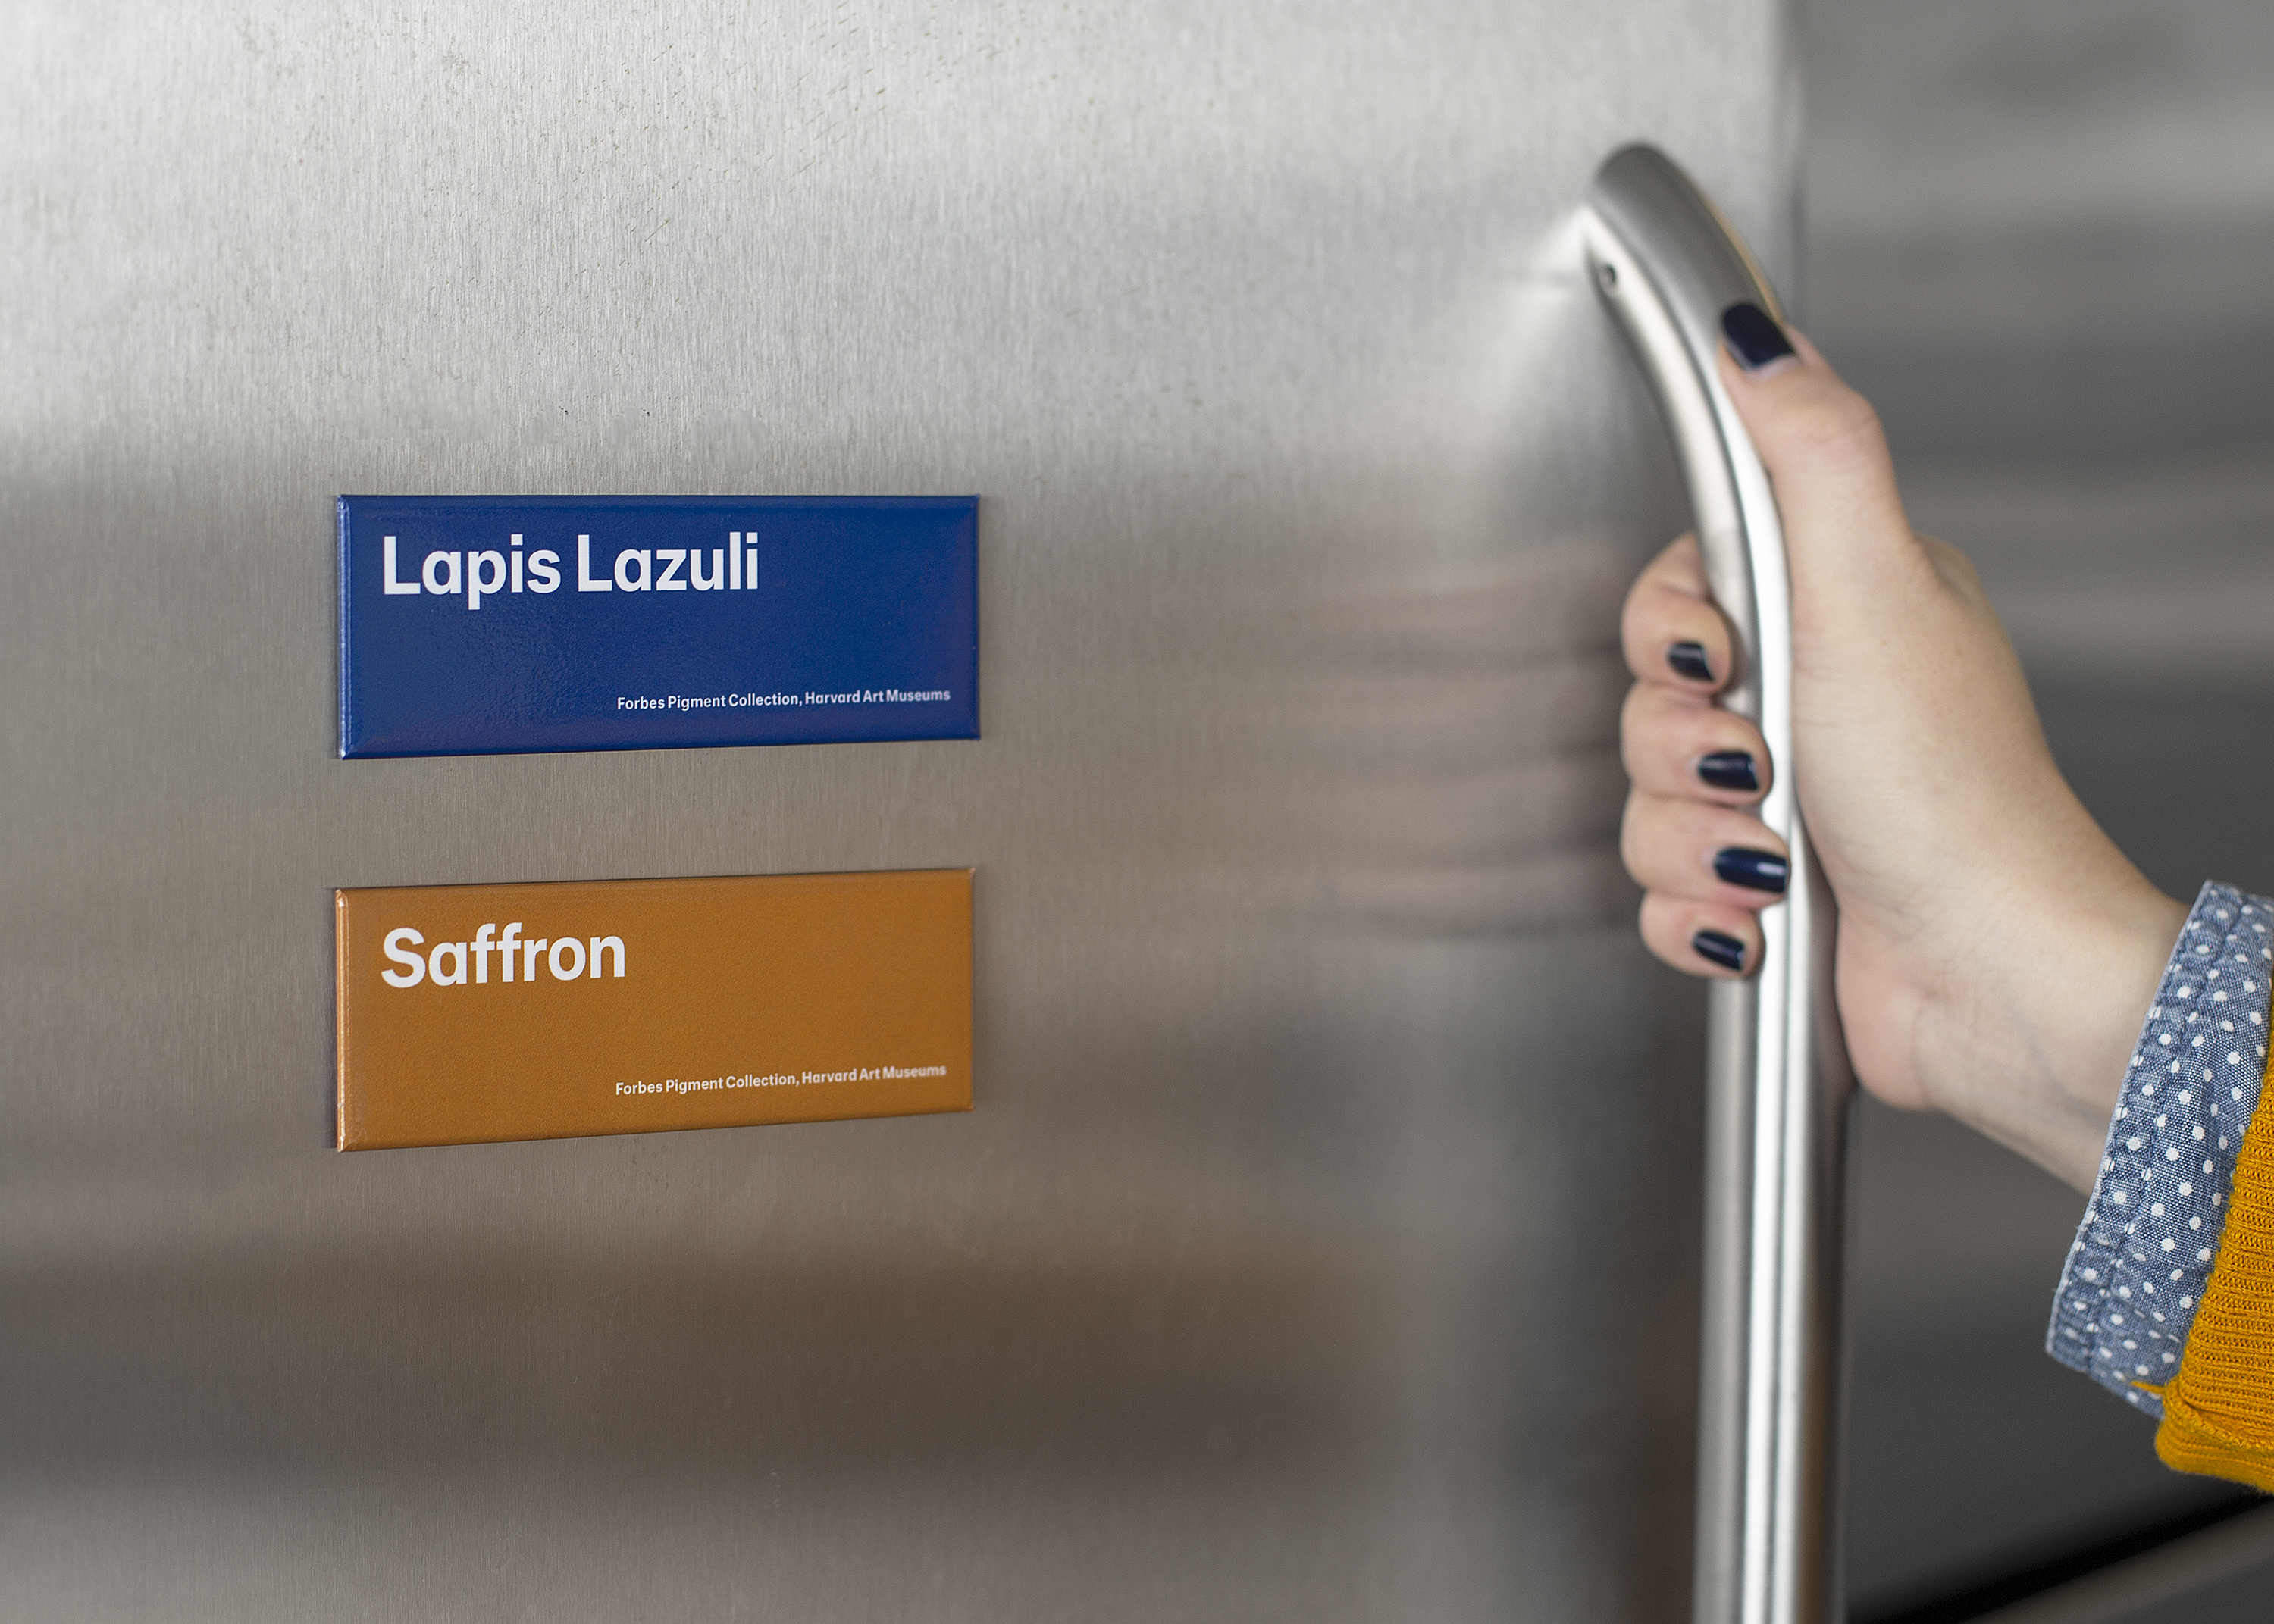 "Two magnets--a blue one is labeled with ""Lapis Lazuli"" and an orange one with ""Saffon""--are stuck to a silver fridge; a hand is resting on the fridge handle."